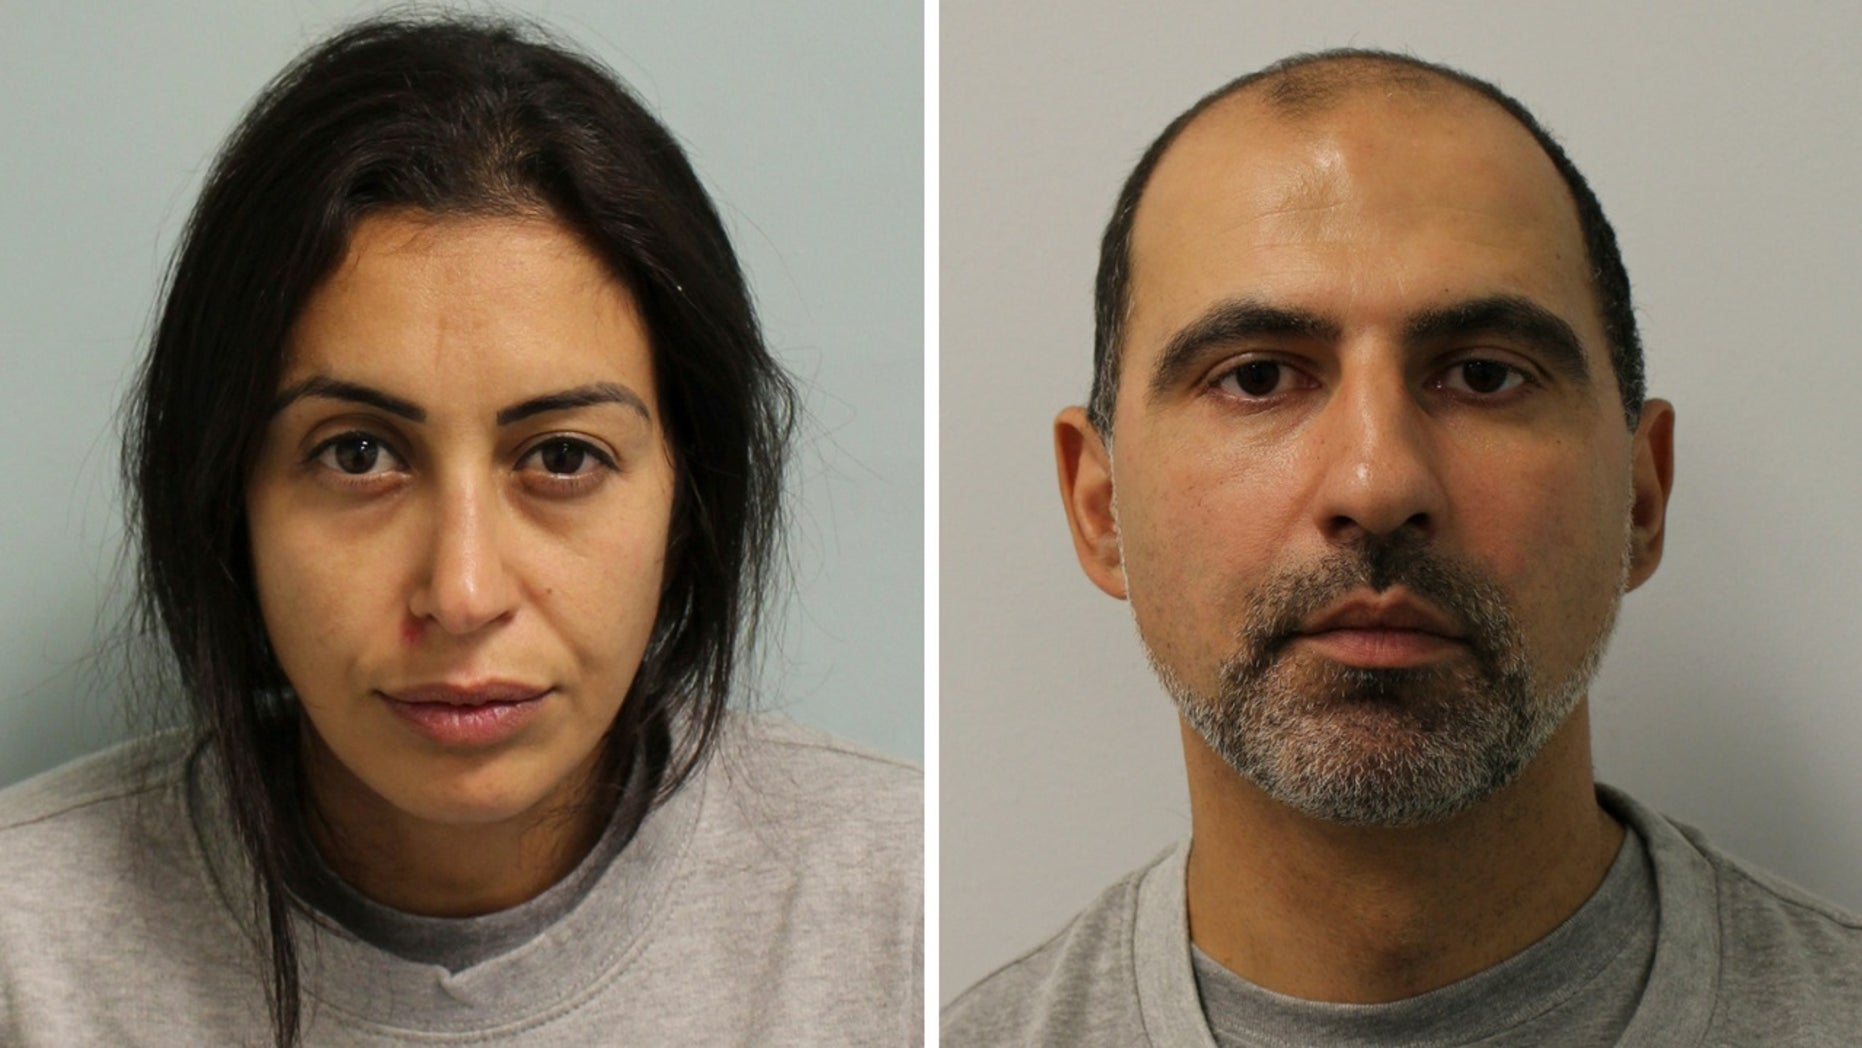 Sabrina Kouider, 35, and Ouissem Medouni, 40, were convicted by a jury at the Central Criminal Court of killing au pair Sophie Lionnet, 21.